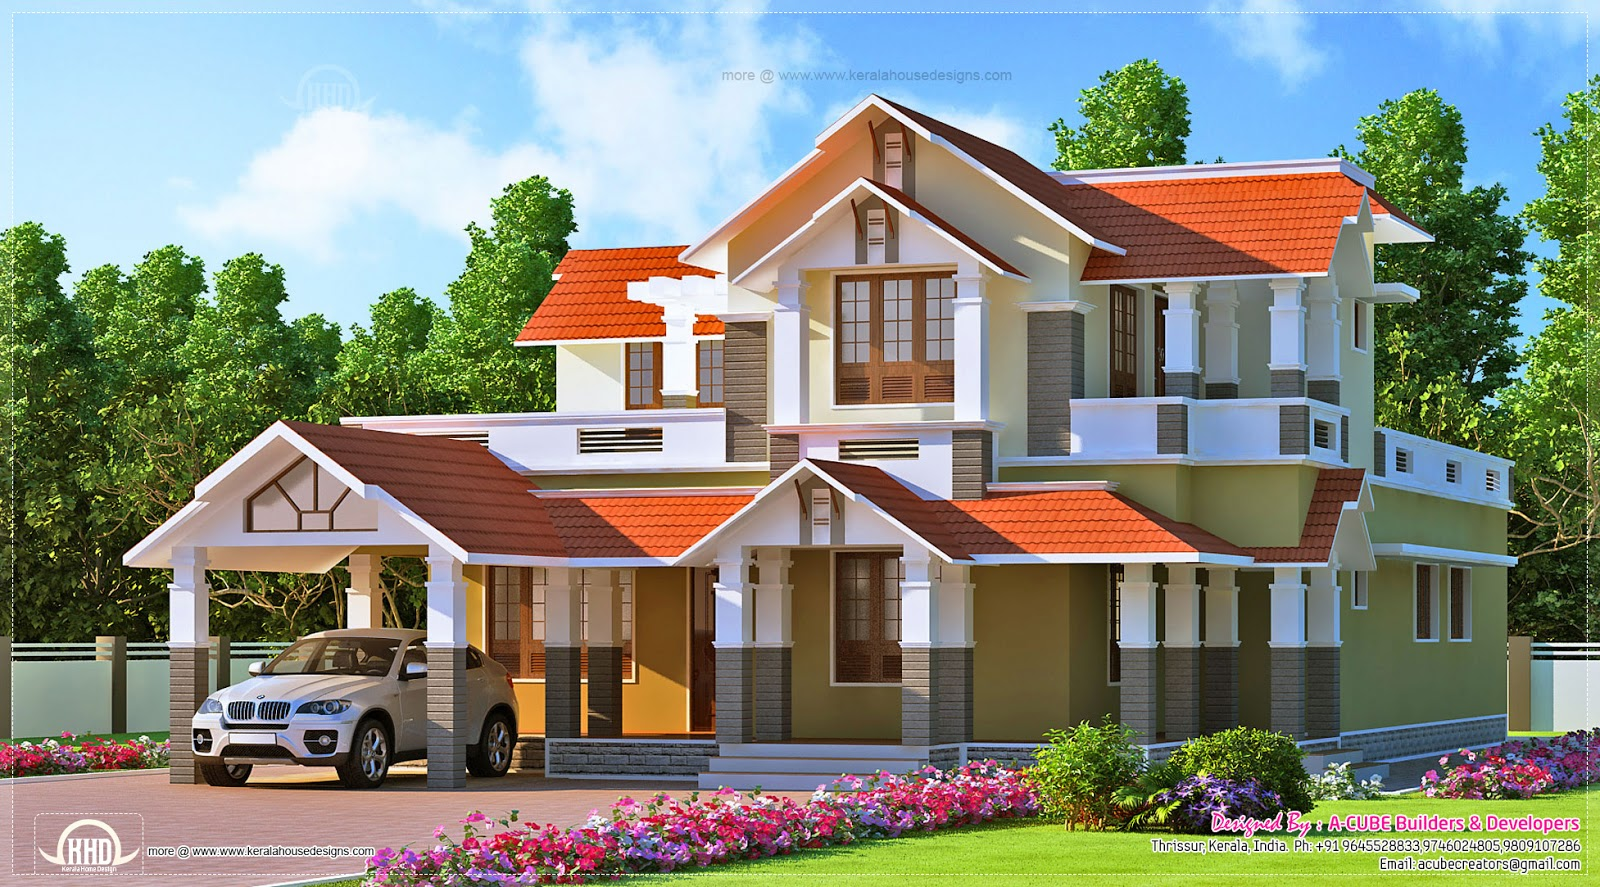 kerala style dream home design in 2900 kerala